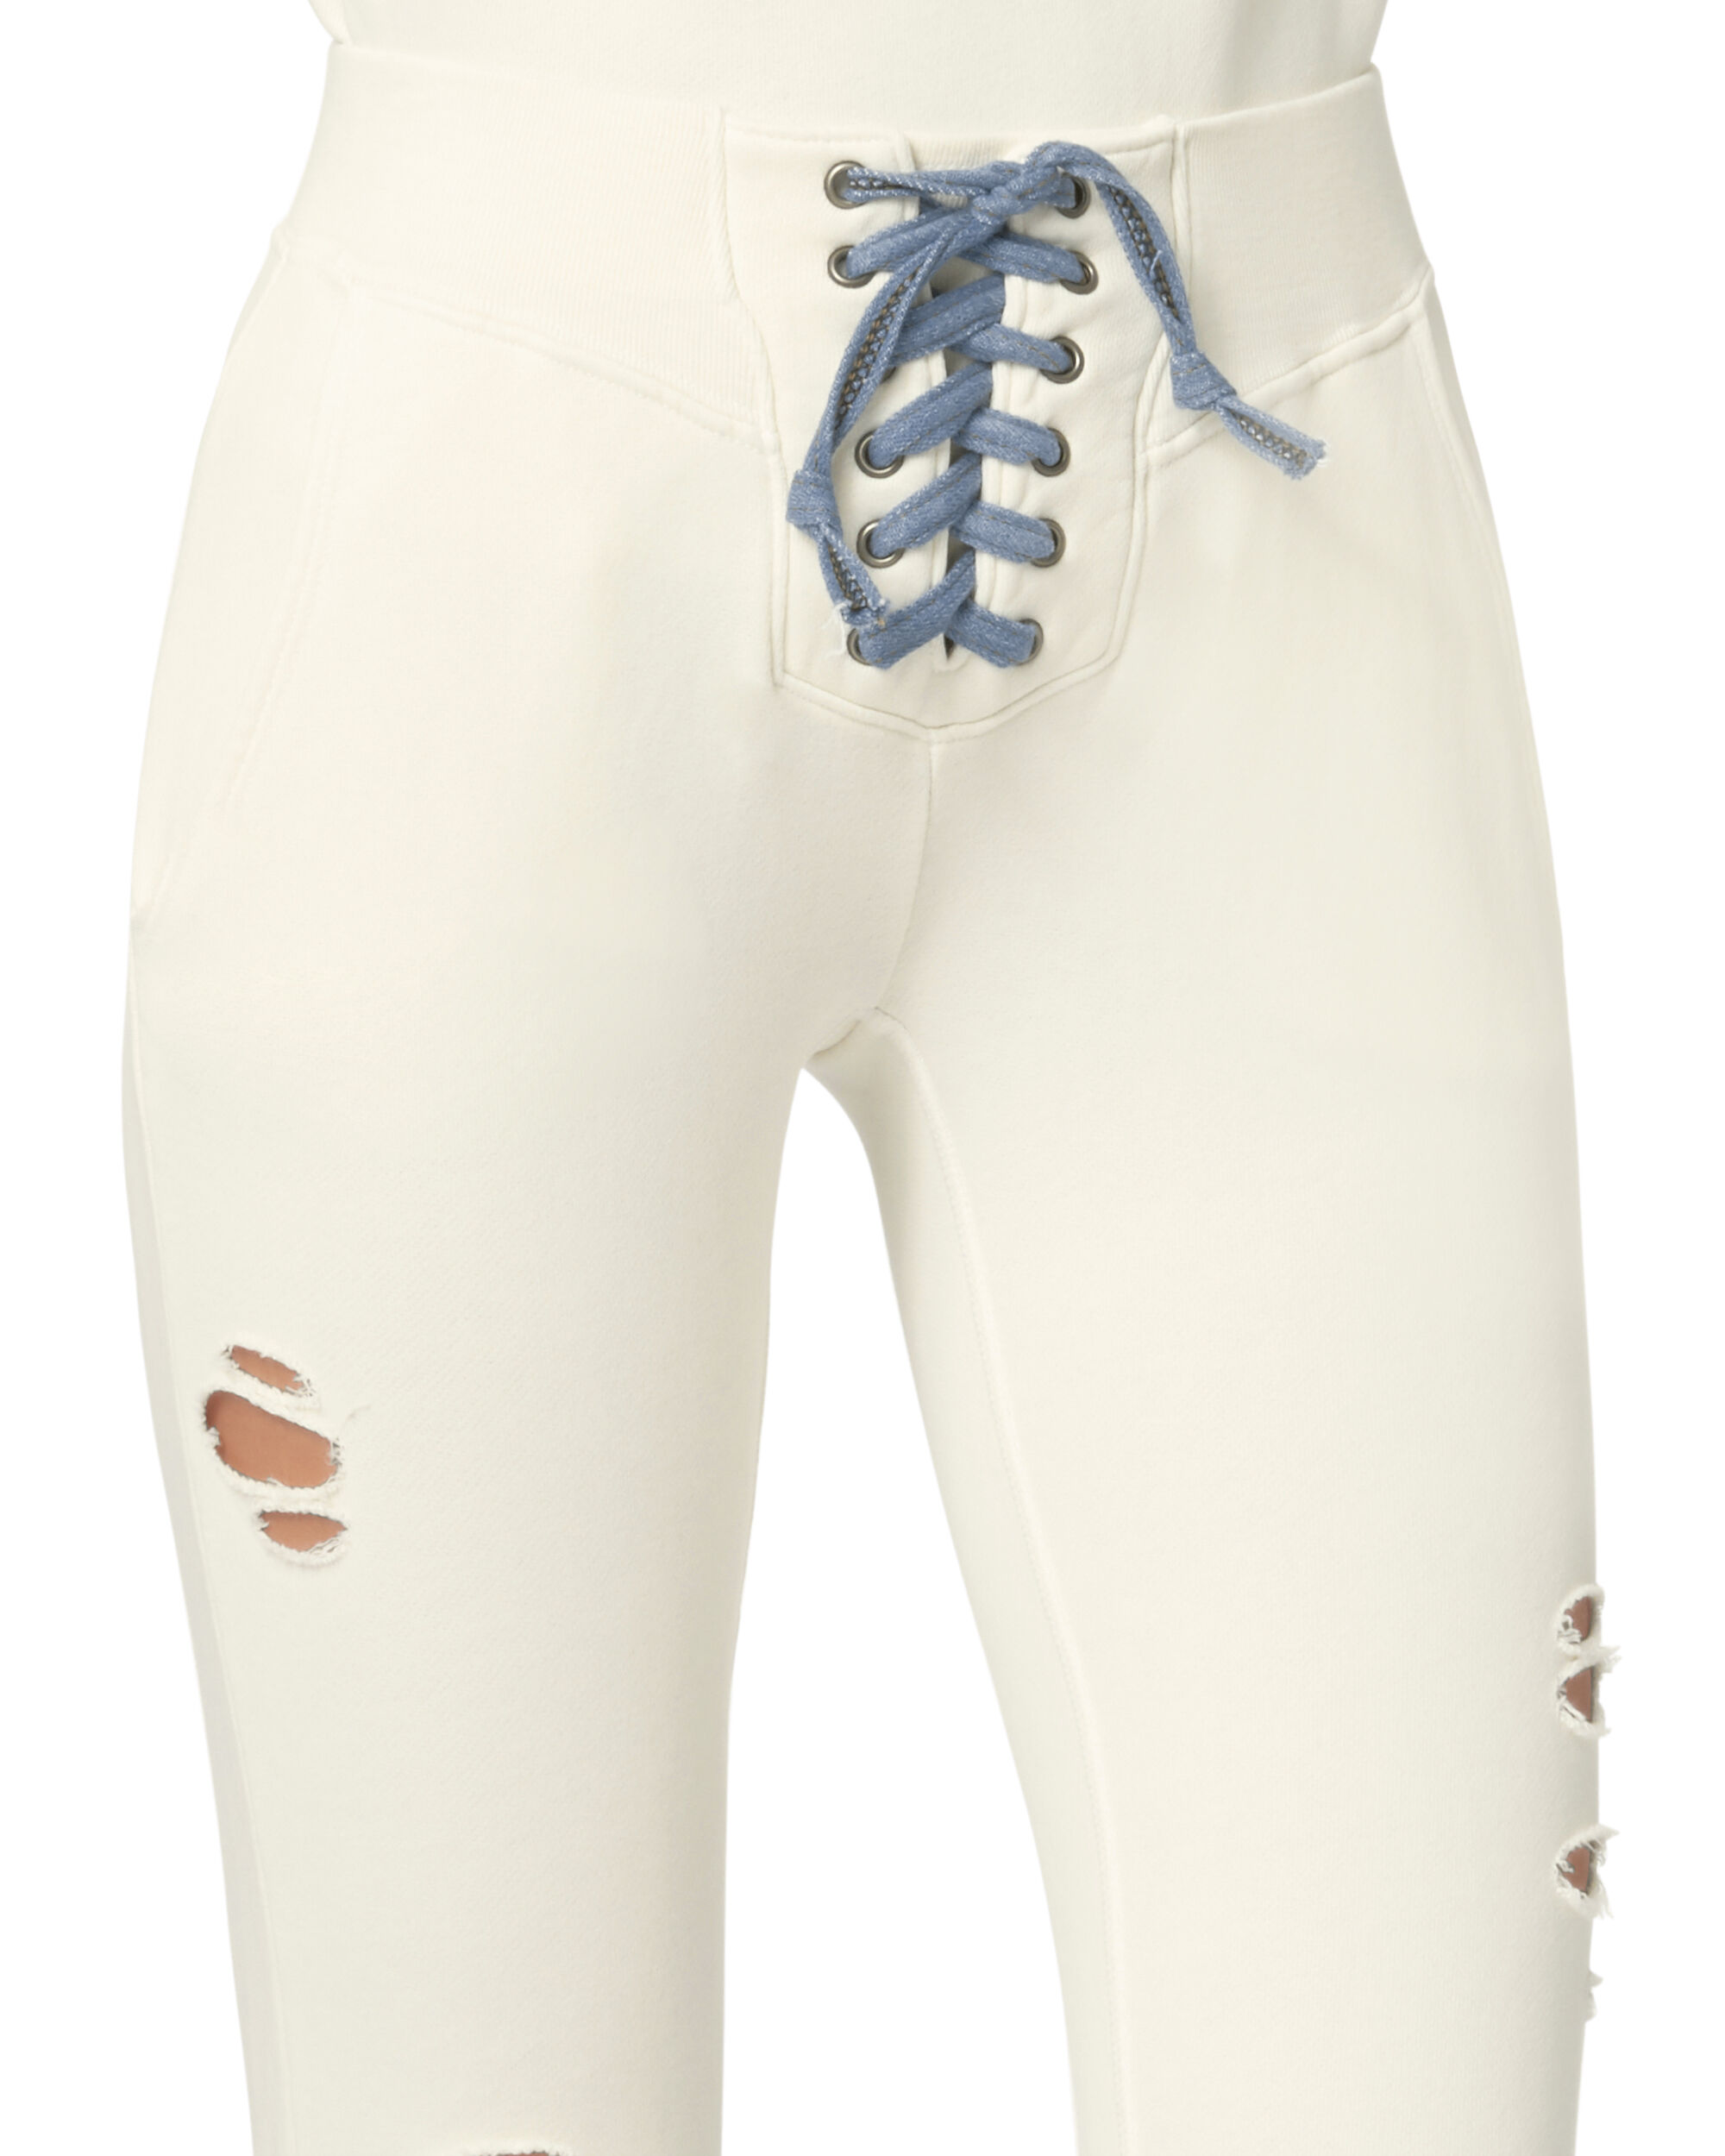 Maddox Lace-Up Ivory Sweatpants, IVORY, hi-res